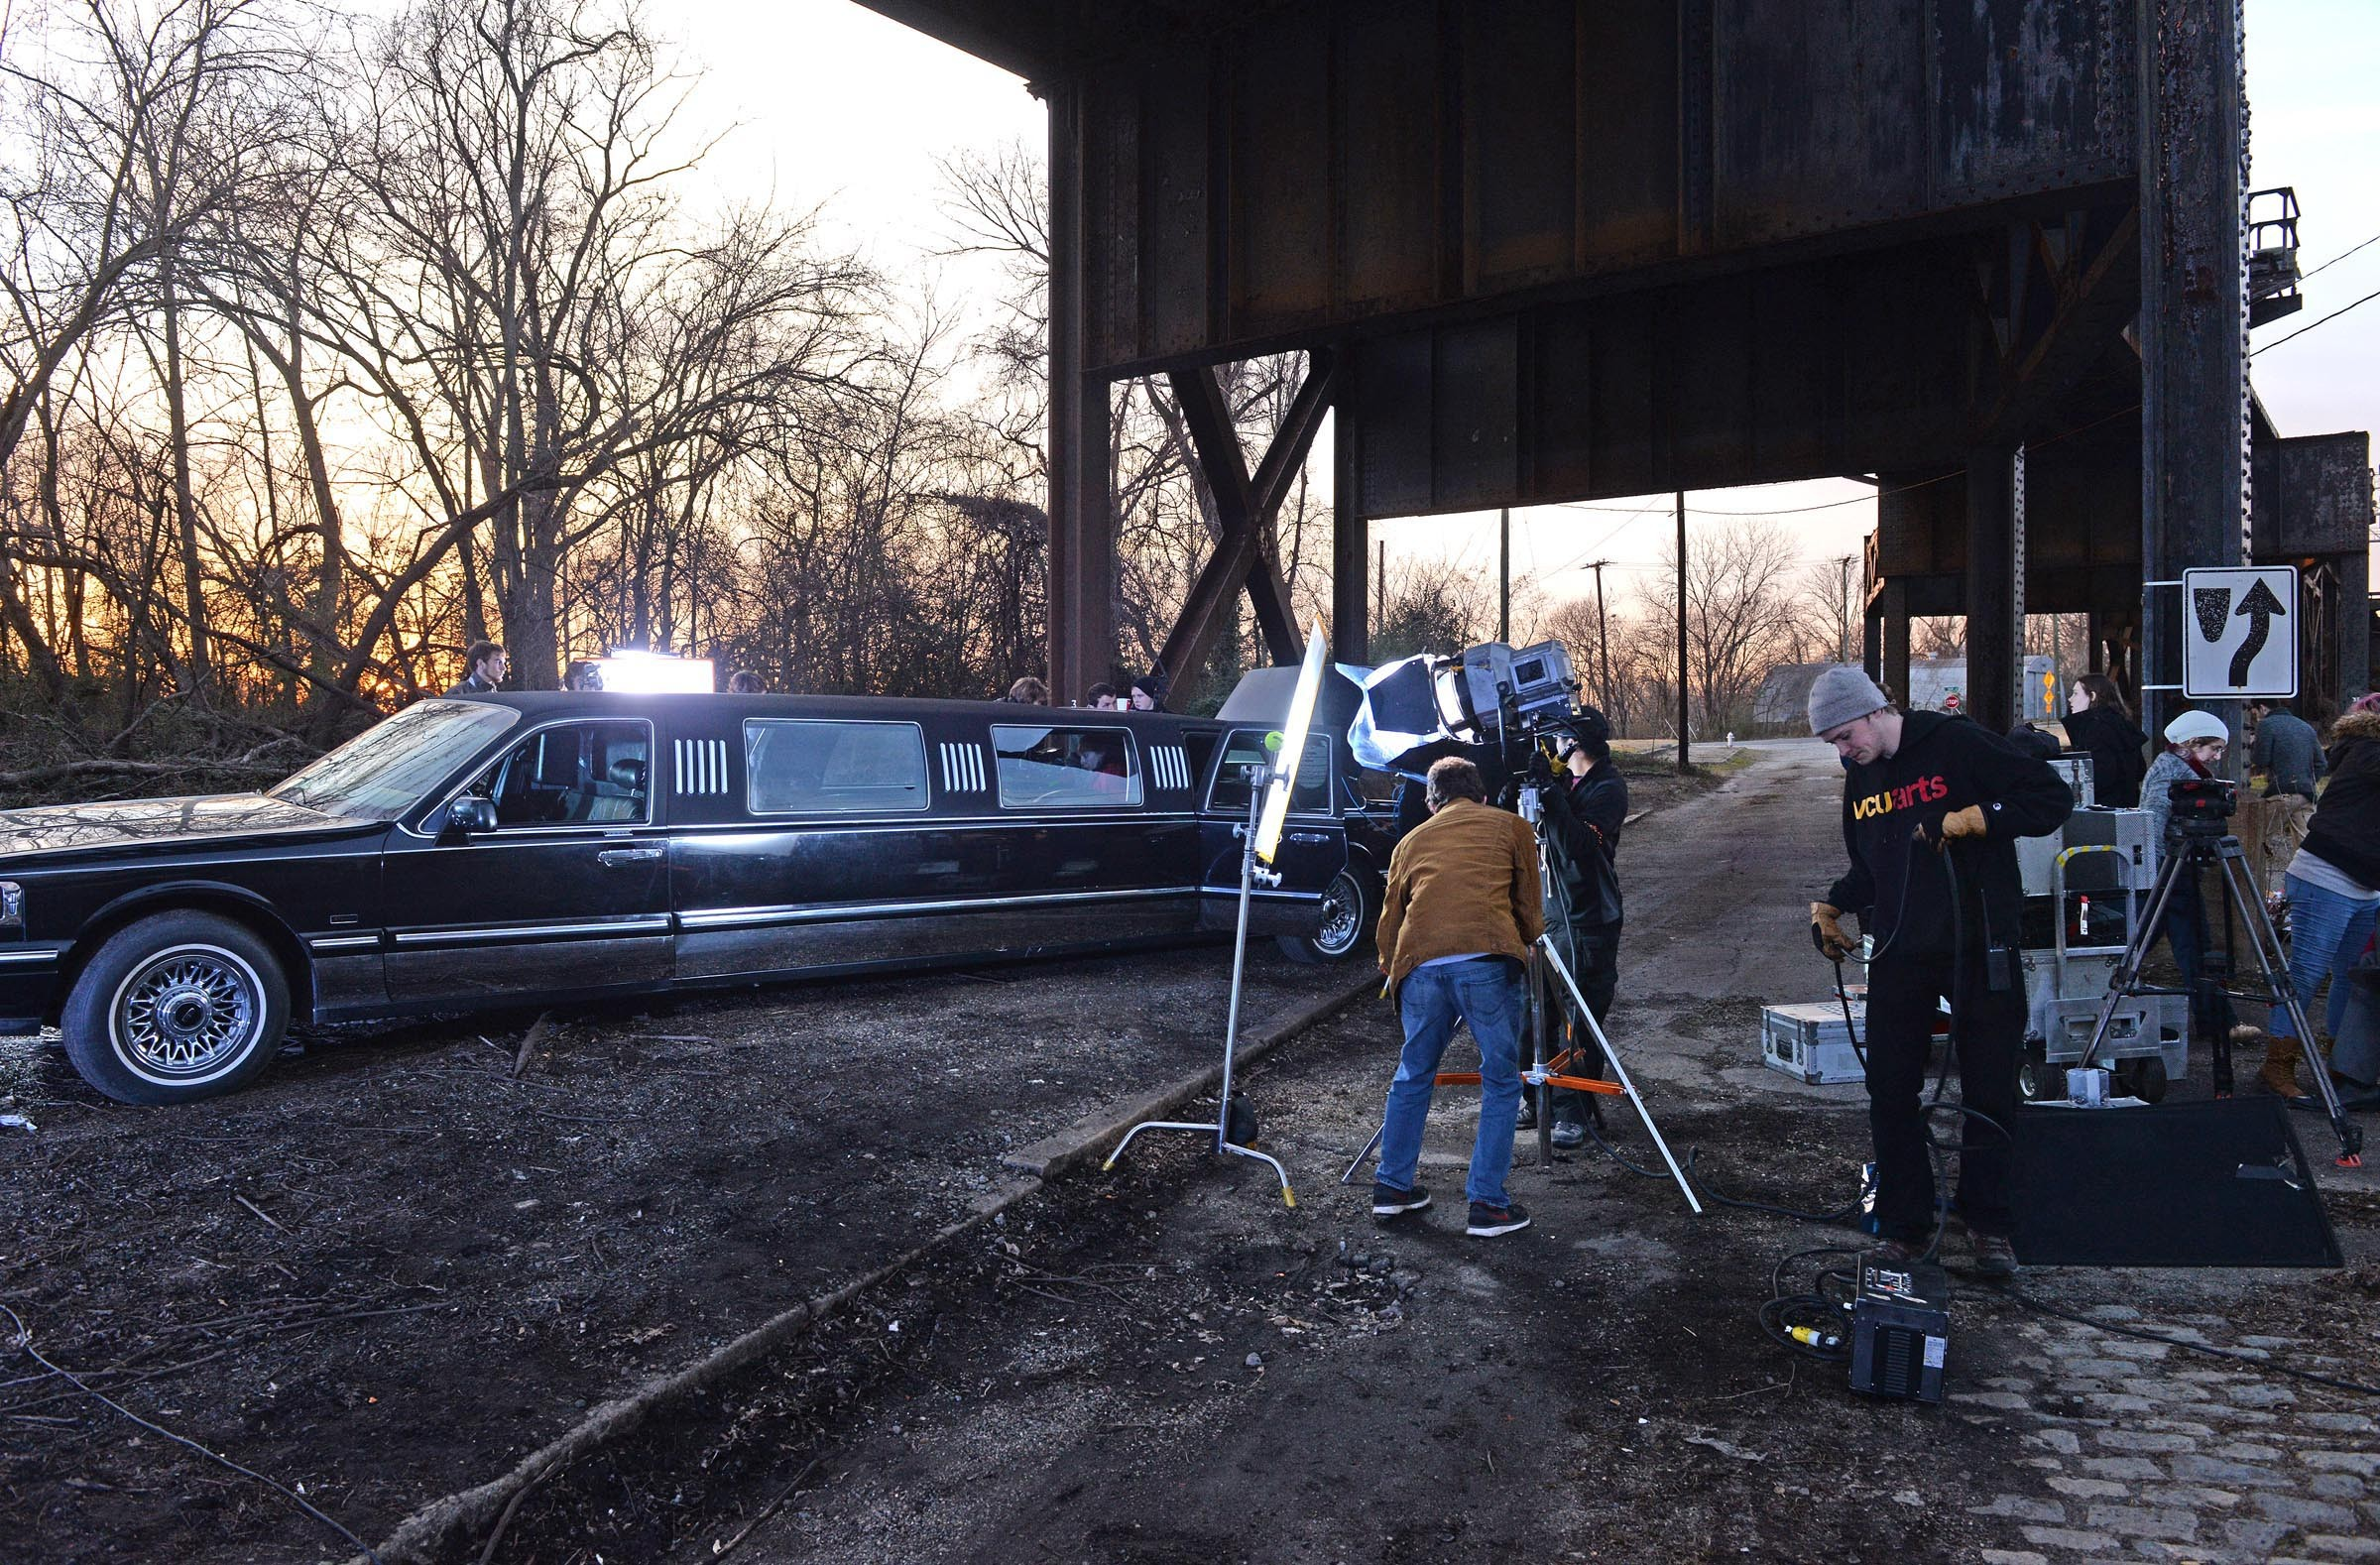 Shot here in Fulton, the movie takes place inside of a 30-foot stretch limo, meant to capture the confining claustrophobia of power that took hold of Macbeth. - SCOTT ELMQUIST